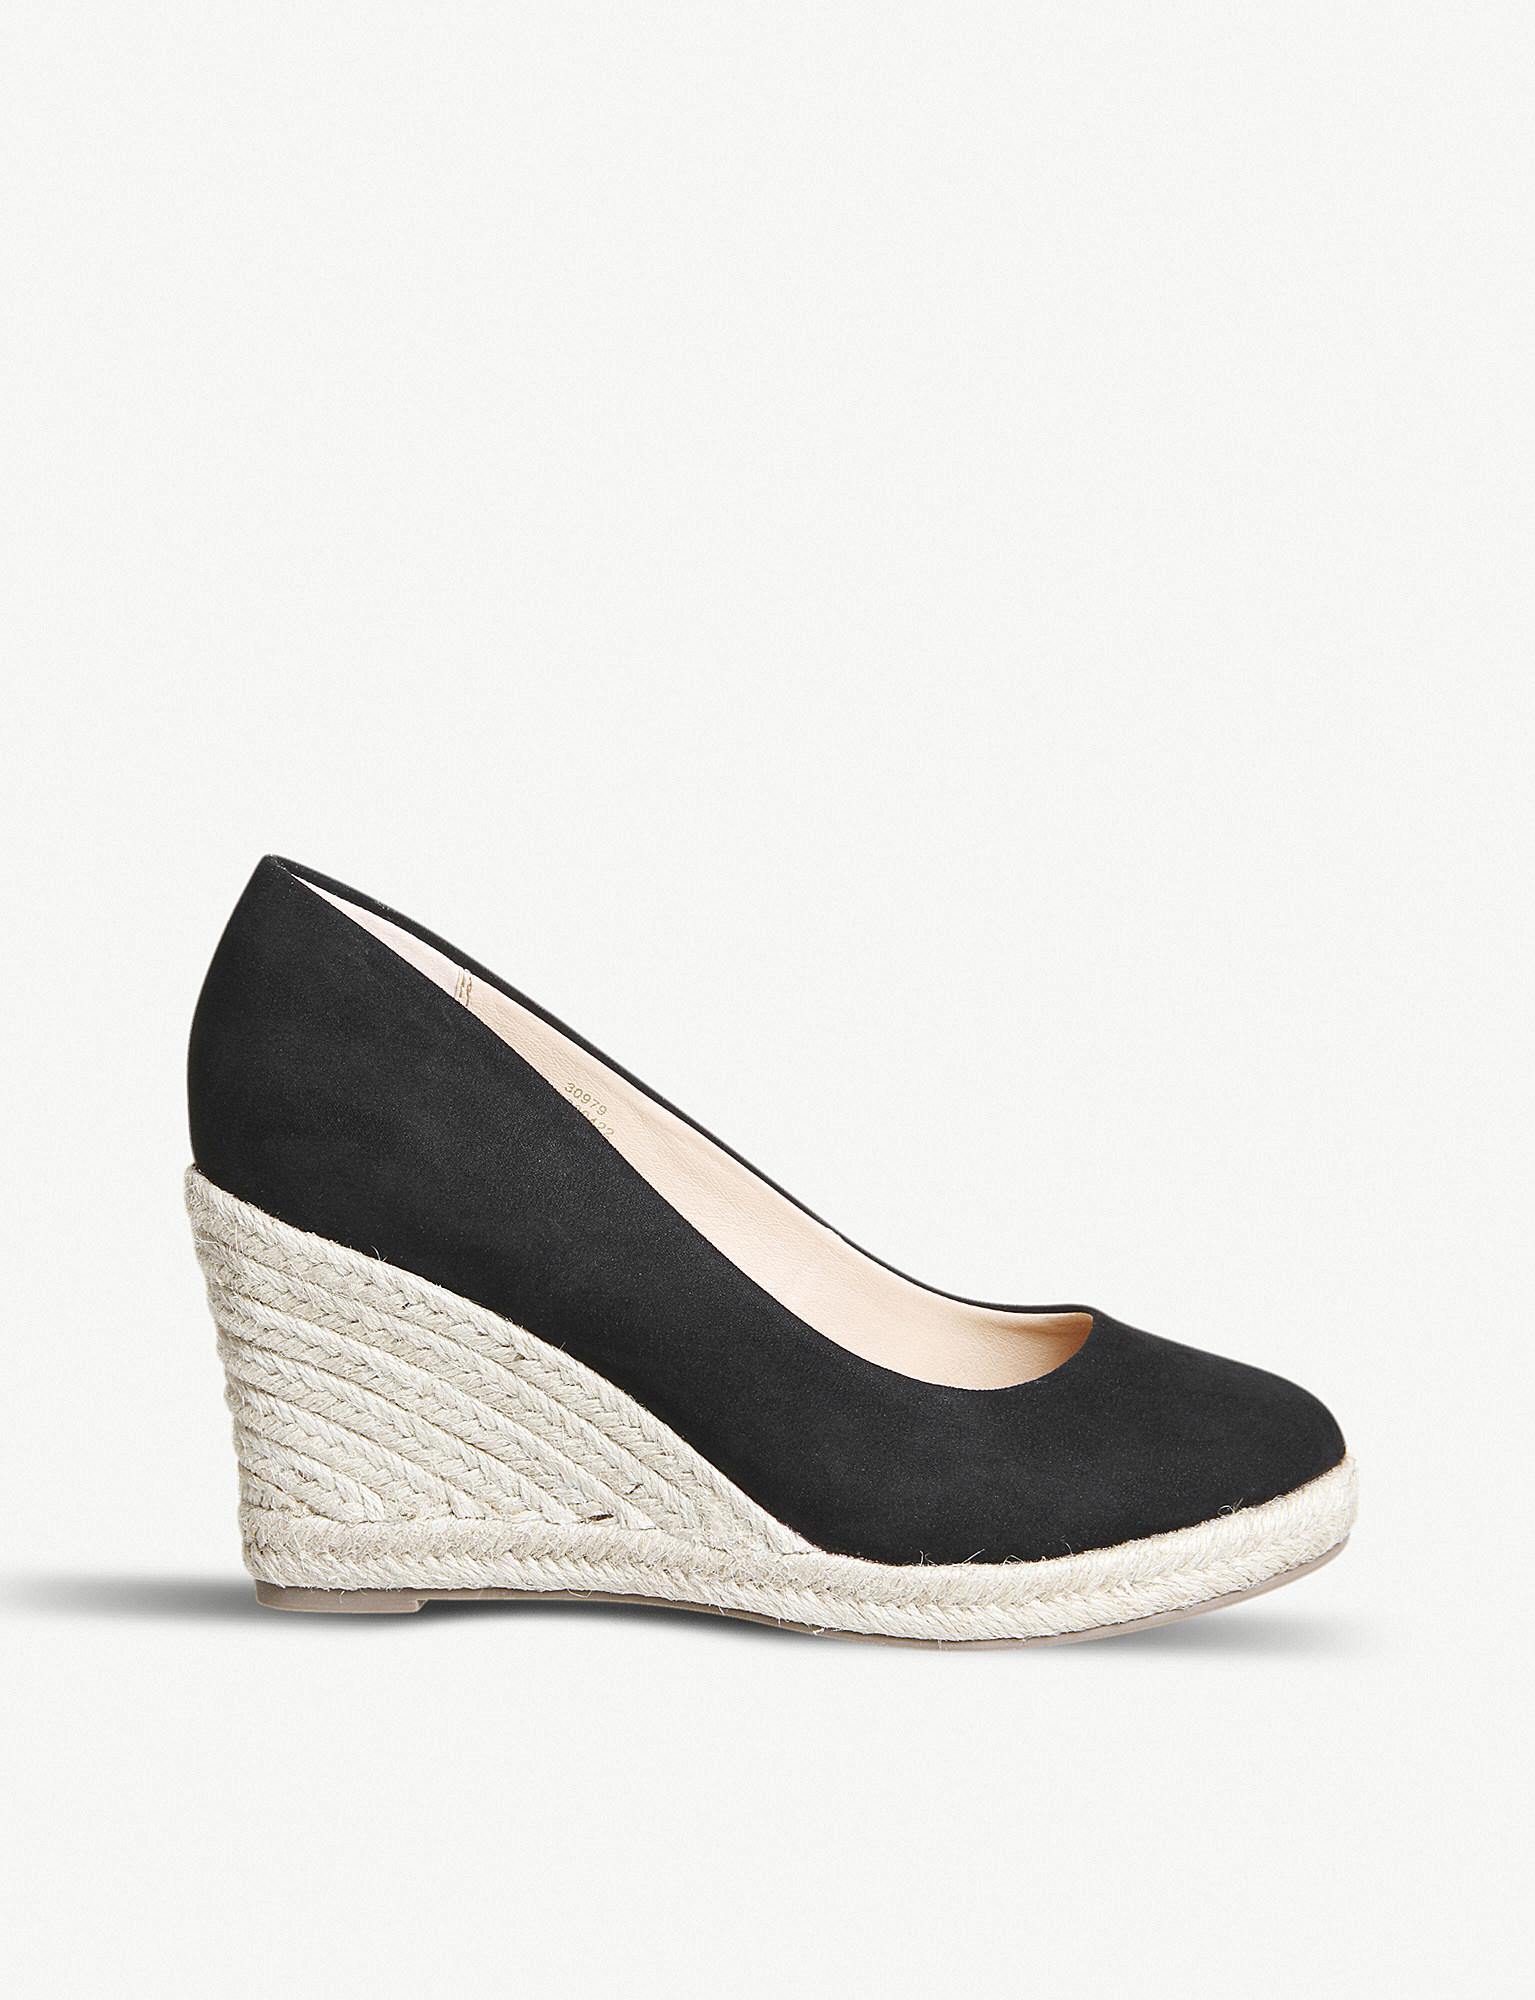 47553fcf66fc Office Marbella Espadrille Wedge Sandals in Black - Lyst